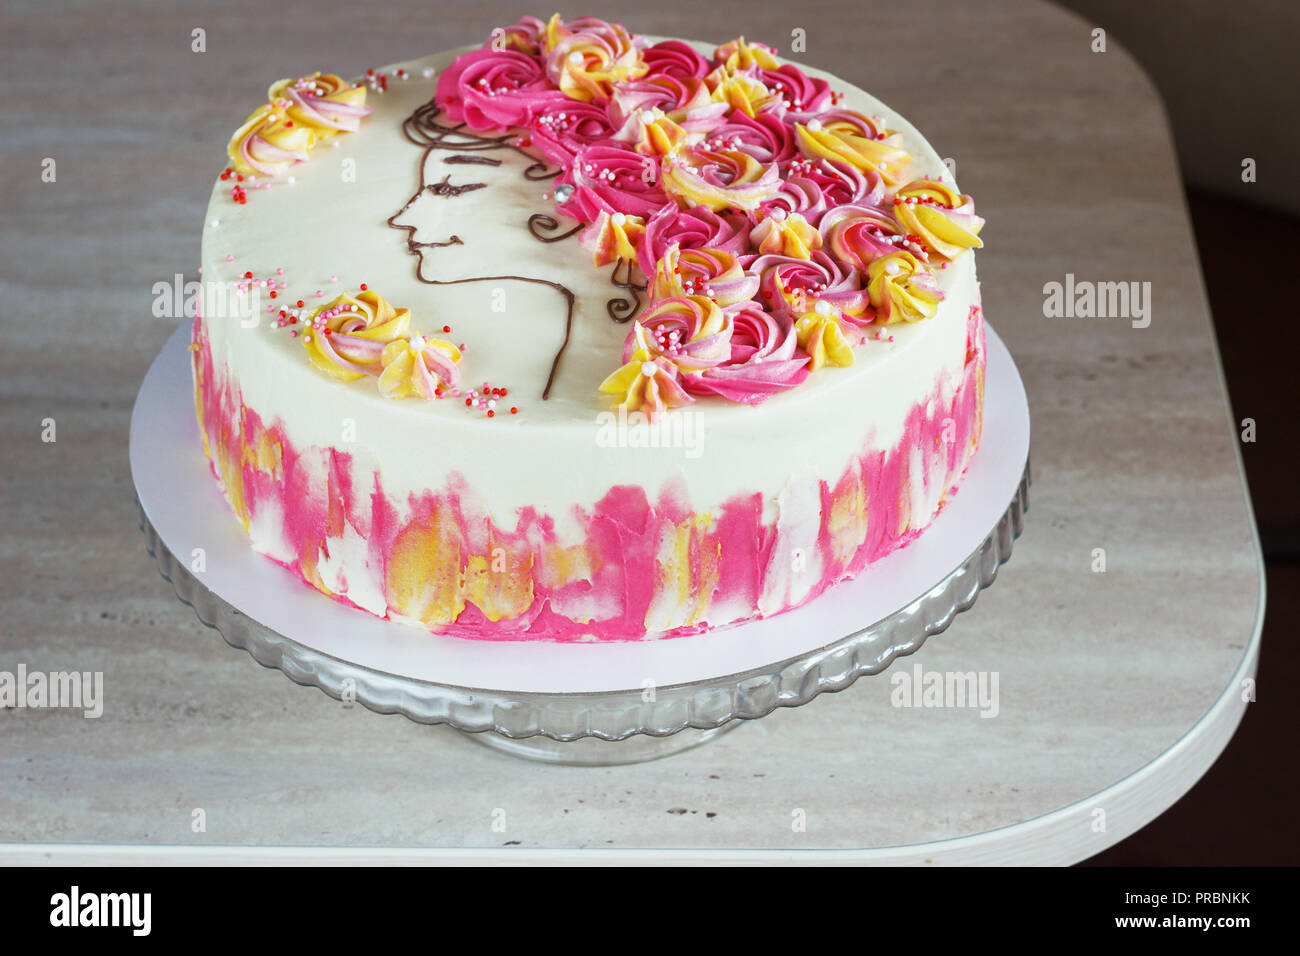 Festive Cake With Cream Flowers And A Girl Face On Light Background